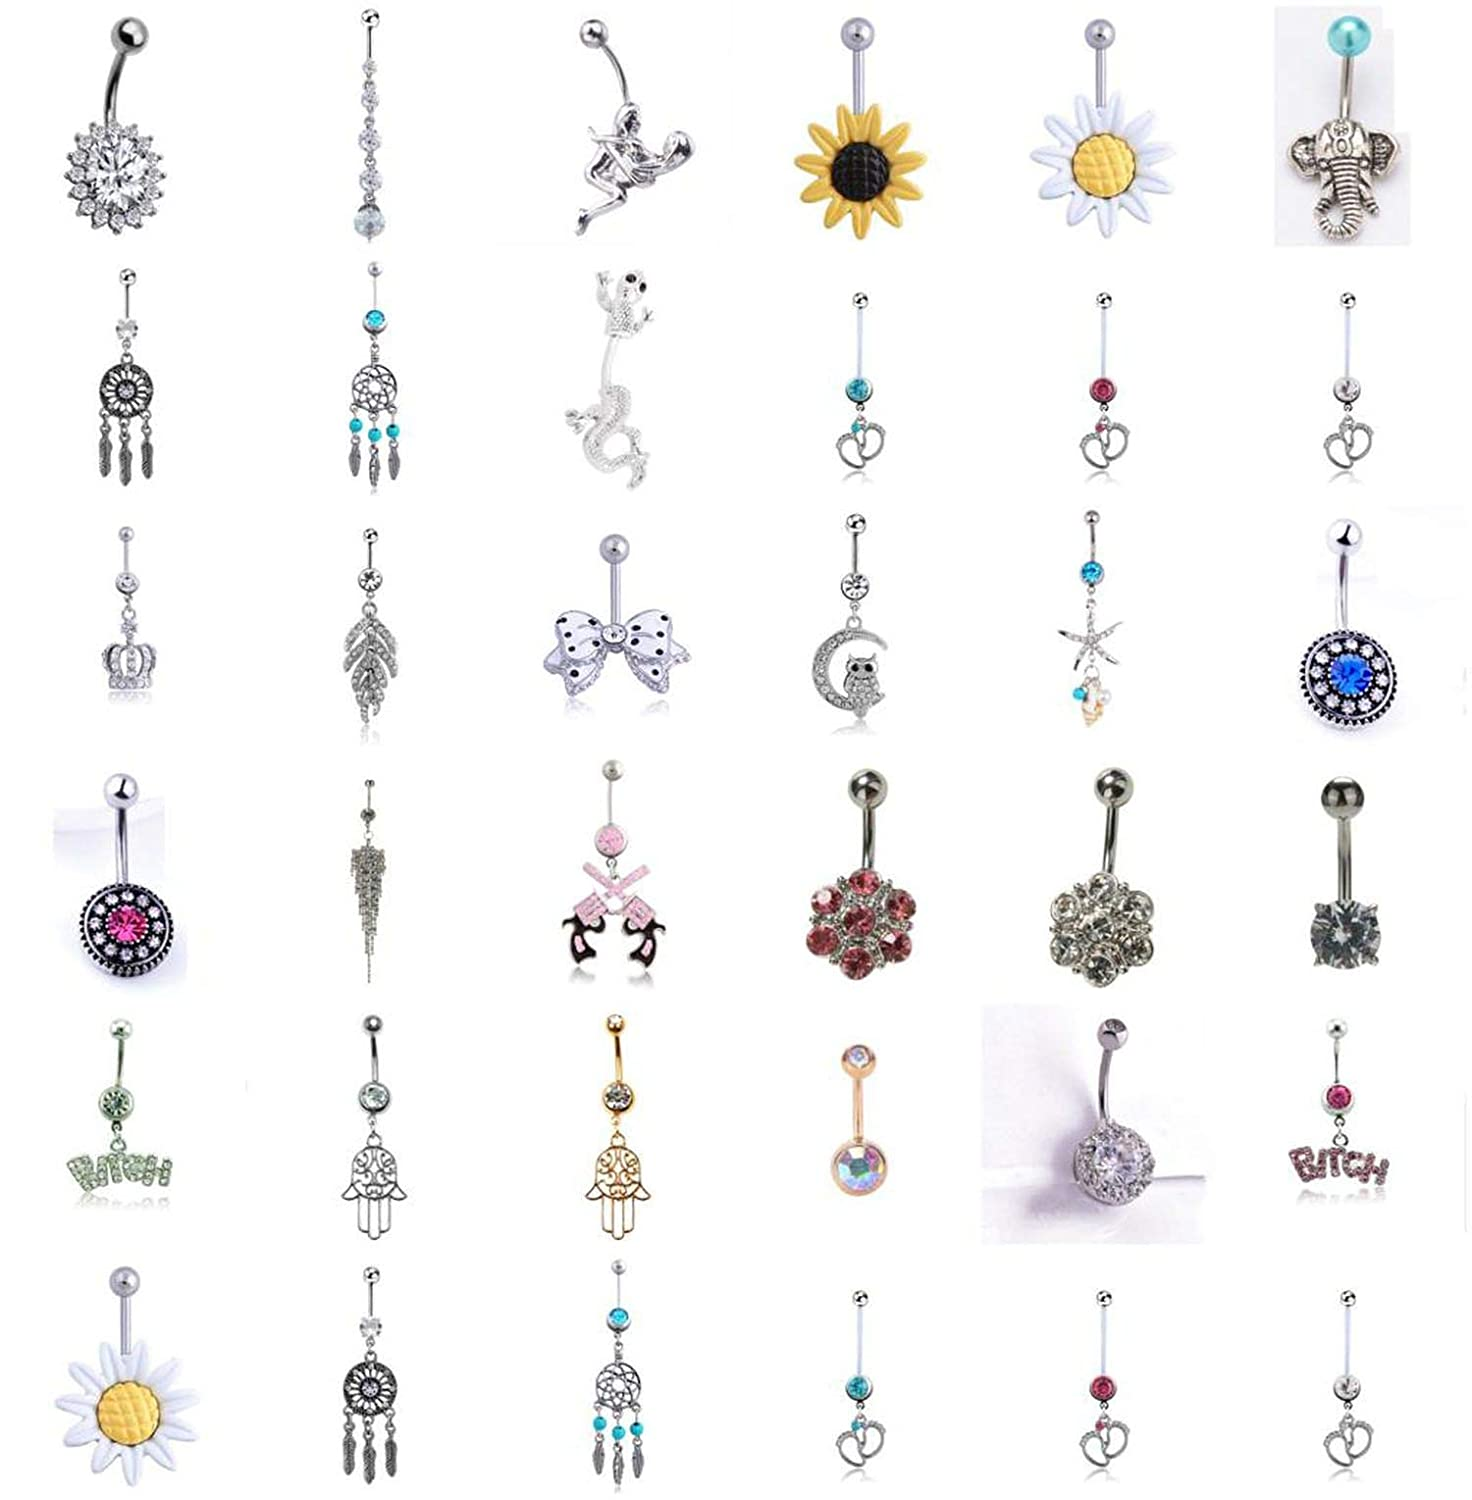 ihuoshang Piercing Belly Button Rings for Women Body Piercing Navel Ring Jewelry